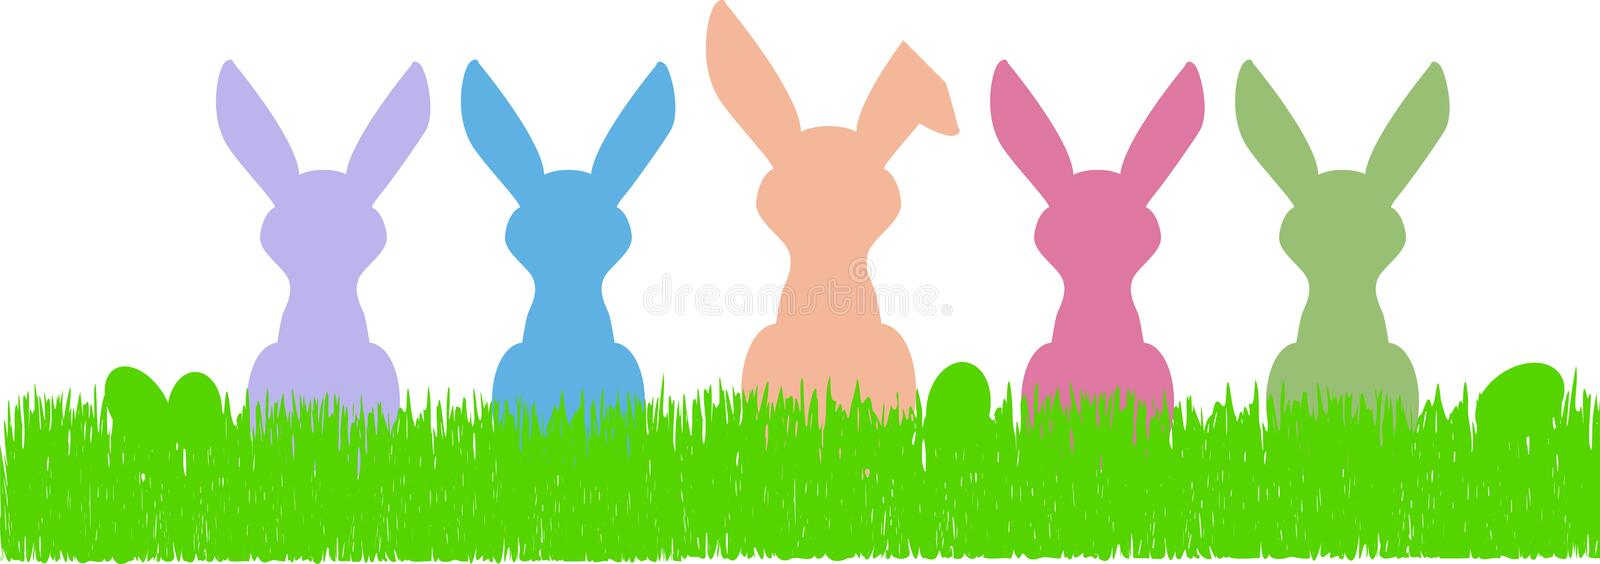 Easter bunny silhouettes and eggs, free copy space royalty free illustration